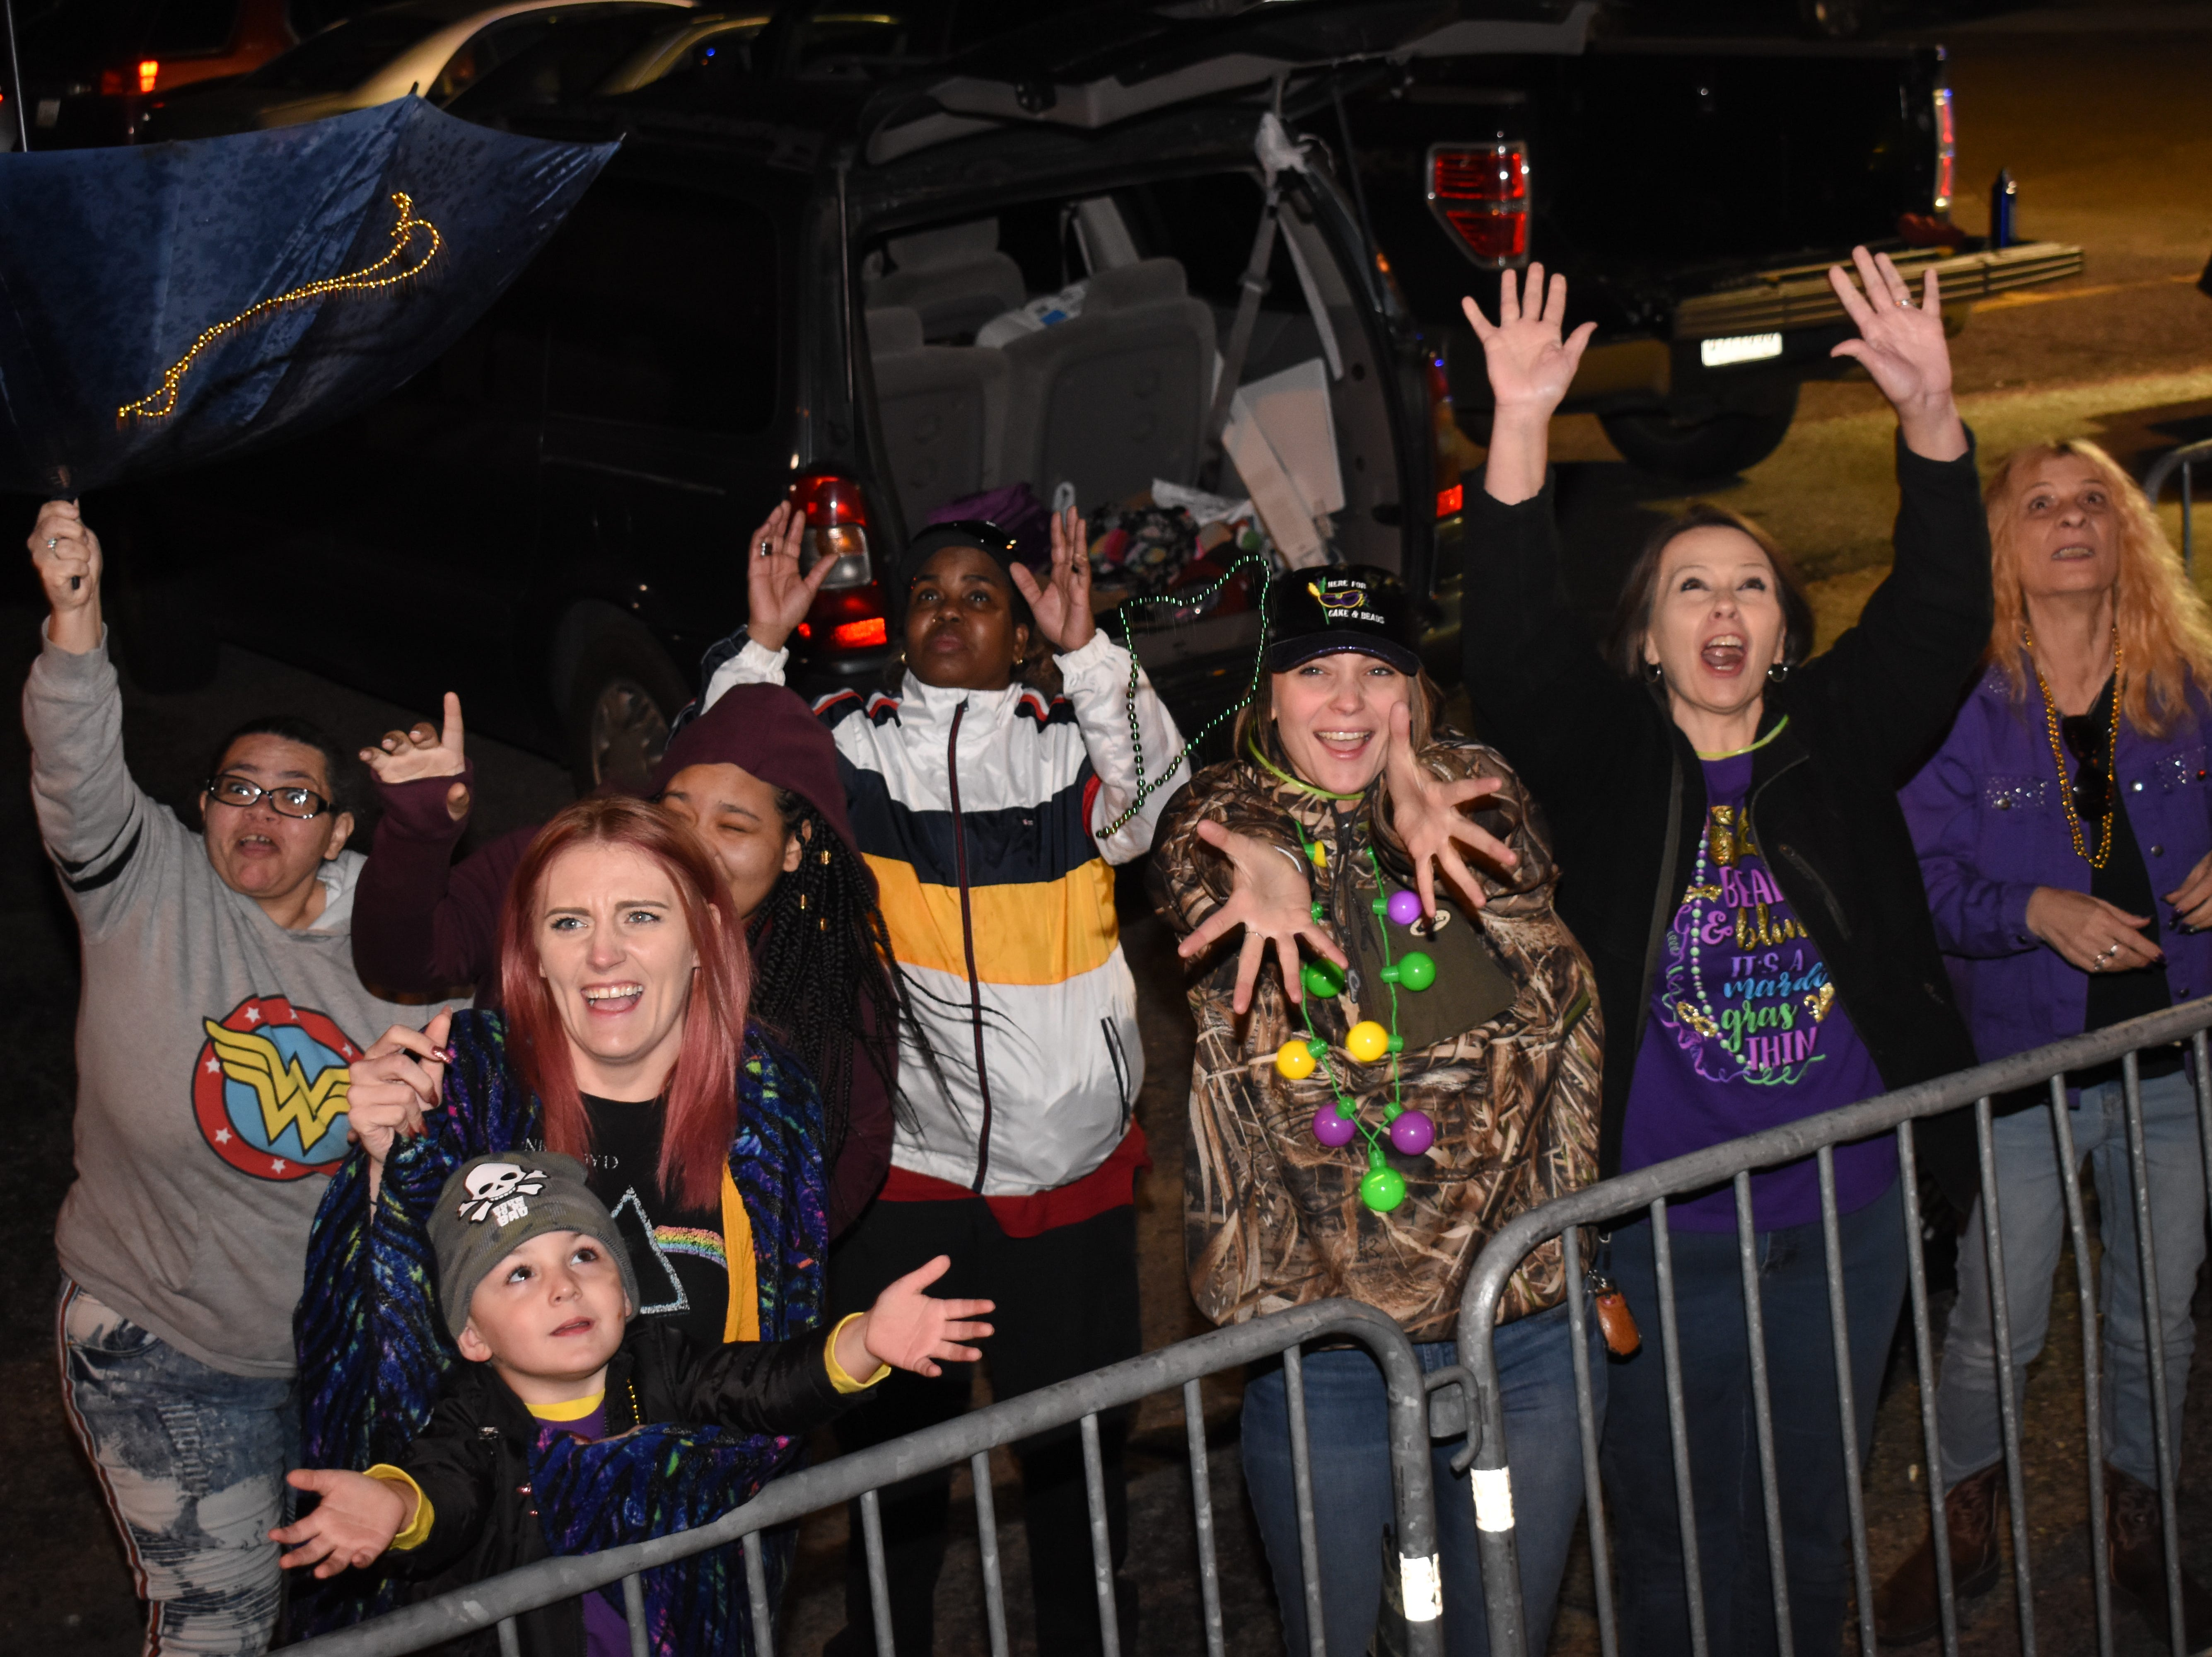 Crowds yell for throws at Pineville's  2019 Light the Night Parade held Monday, Feb. 25, 2019. The parade started in Pineville near Louisiana College and ended in downtown Alexandria. The parade was postponed last Friday due to weather.